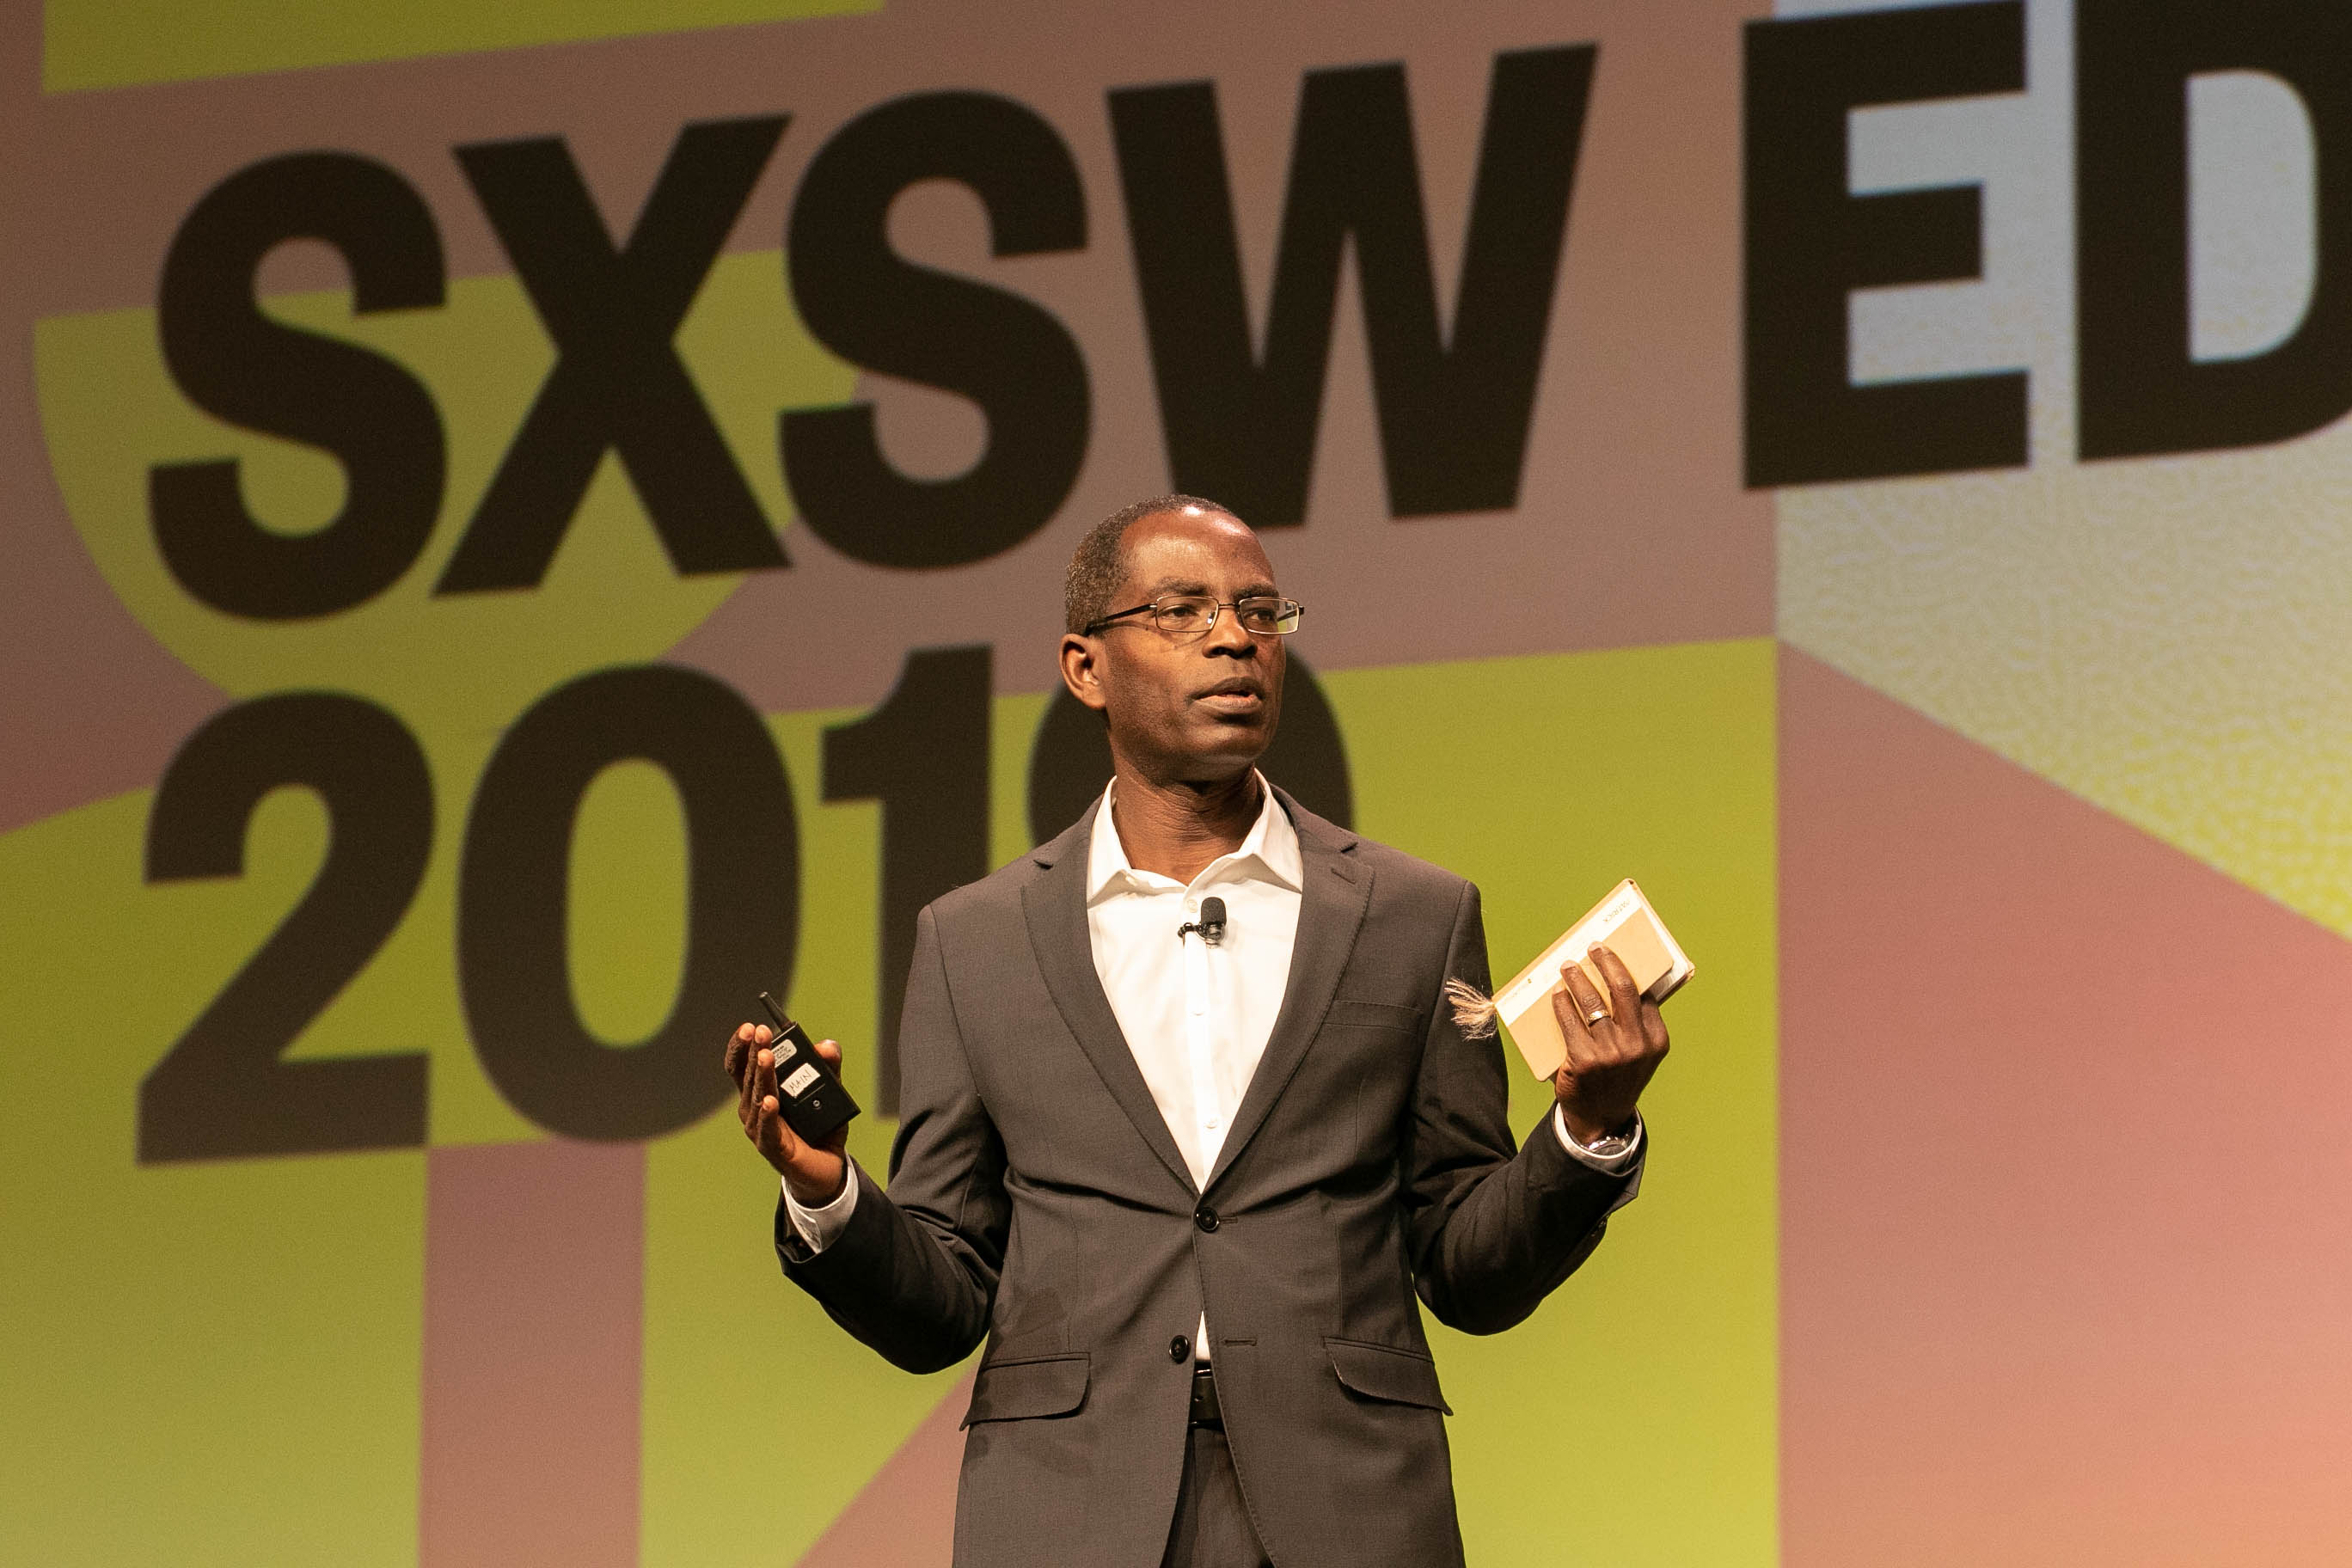 Patrick Awuah Jr keynote at SXSW EDU. Photo by Steven Snow.